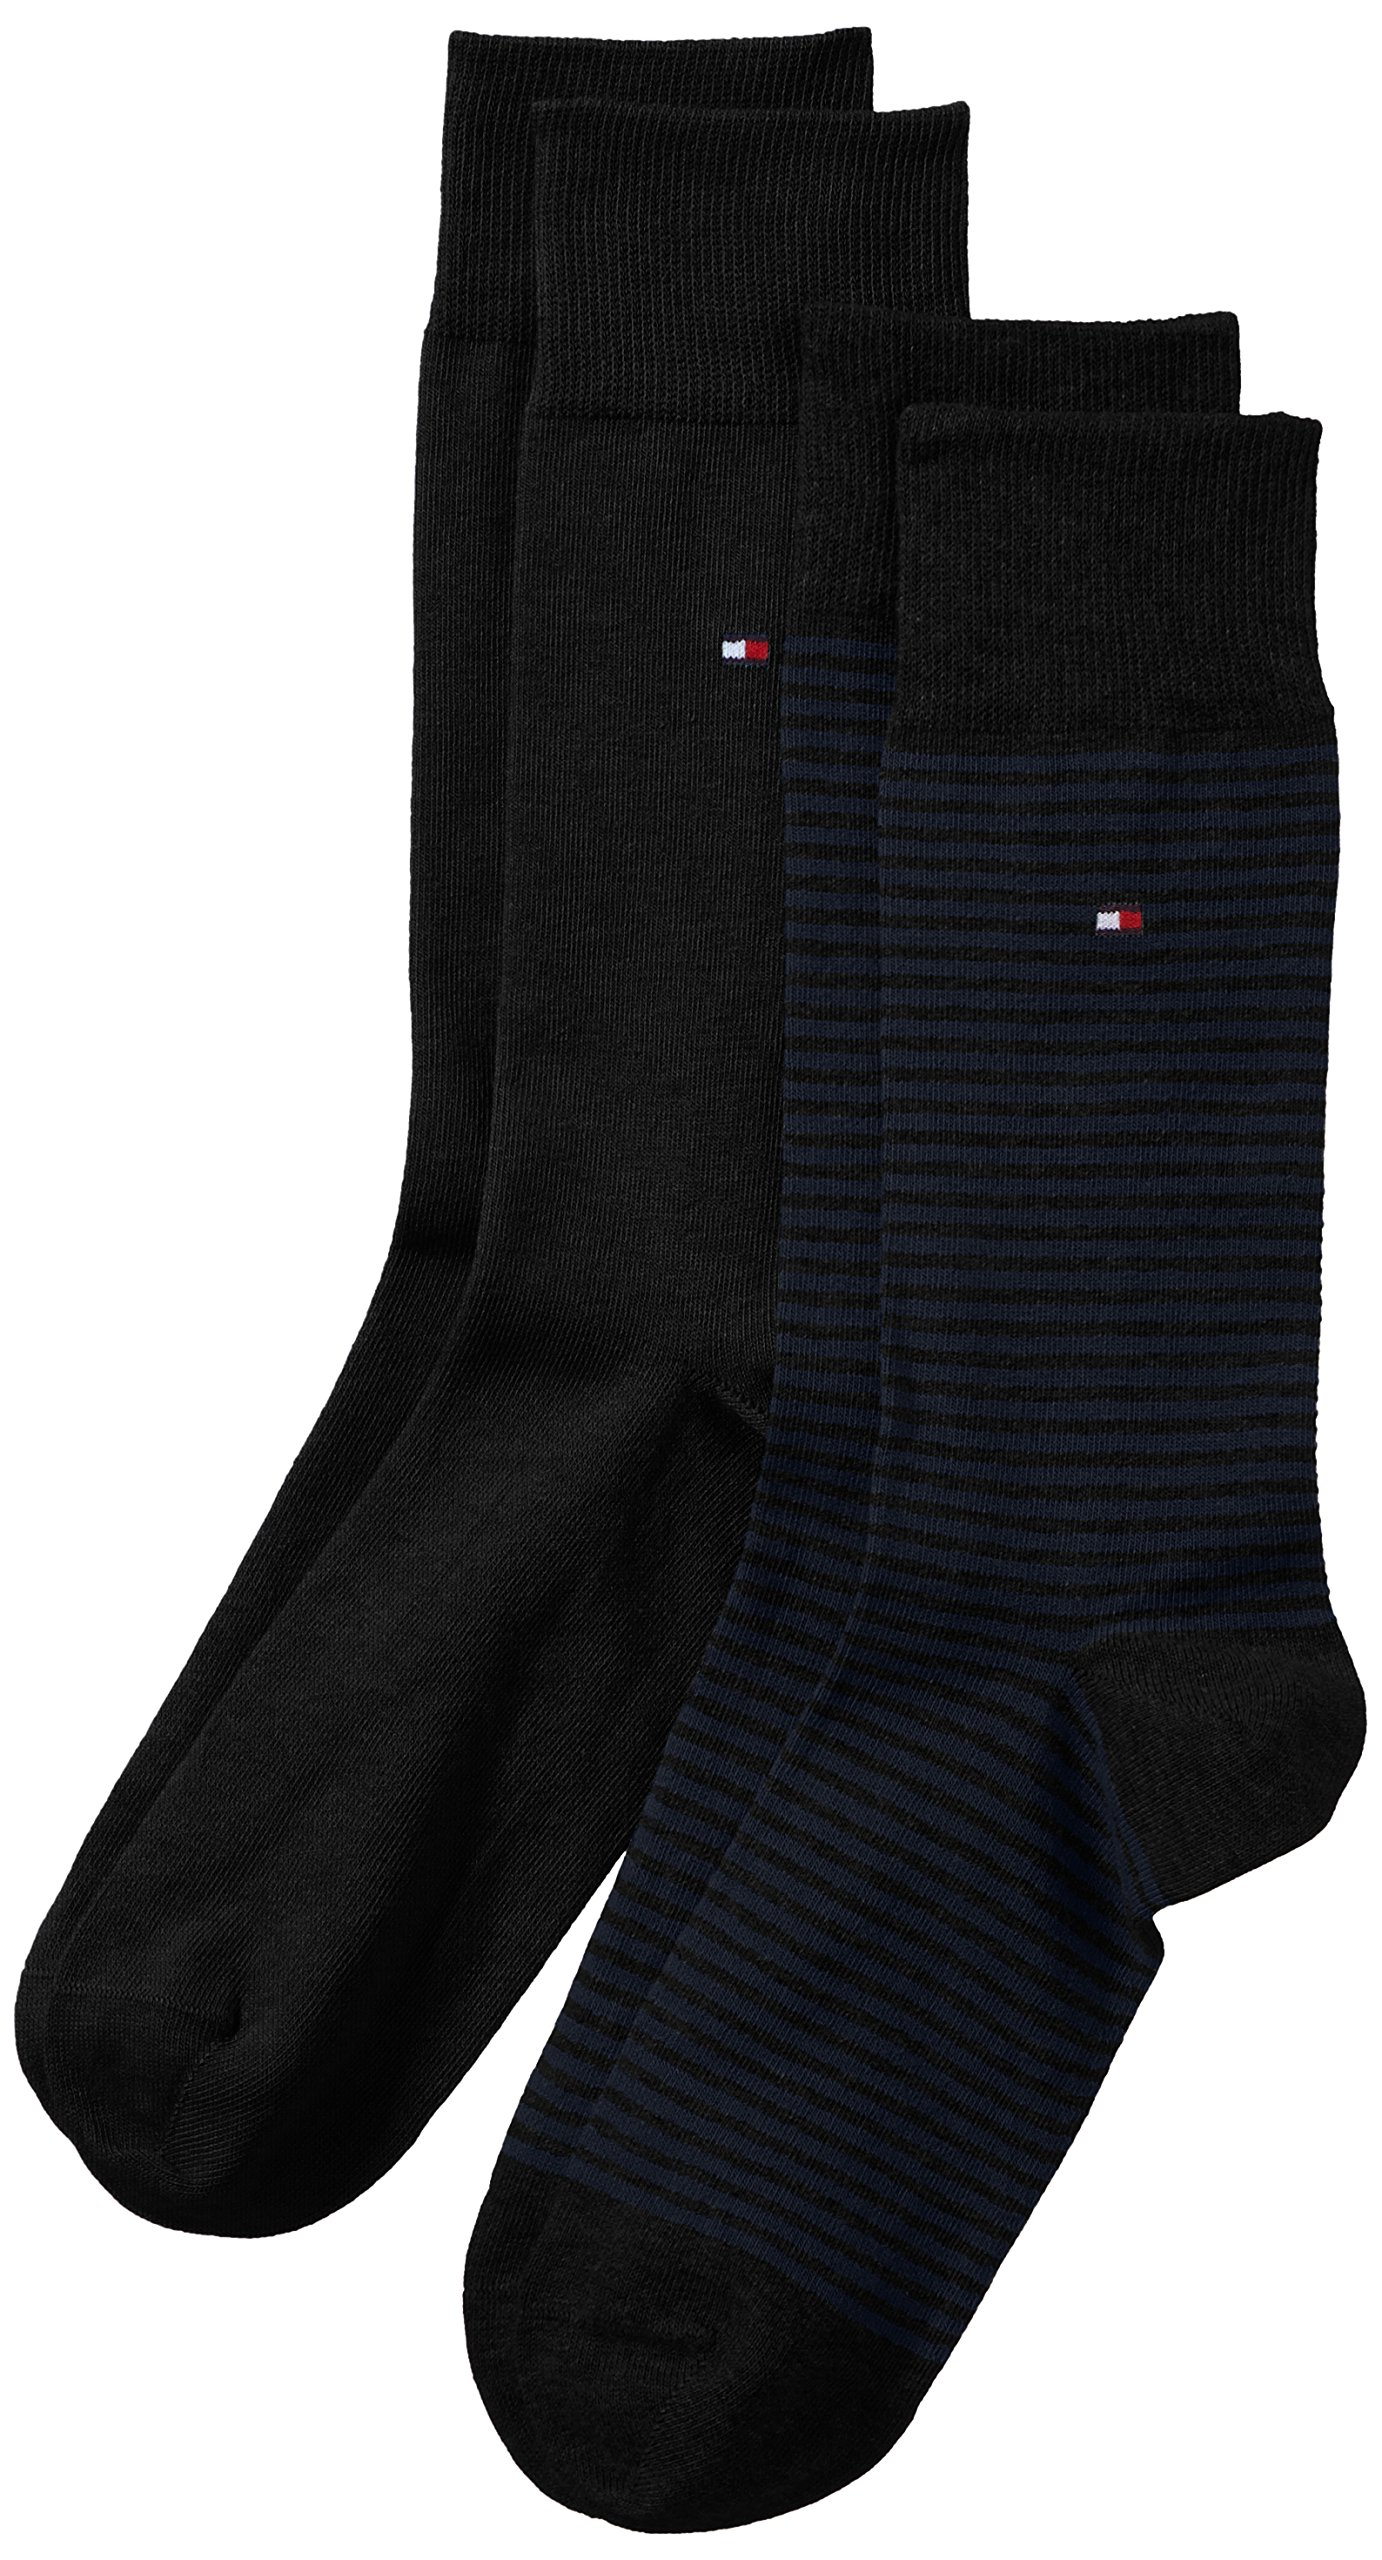 Tommy Hilfiger - Calcetines para hombre, Lote de 2 product image